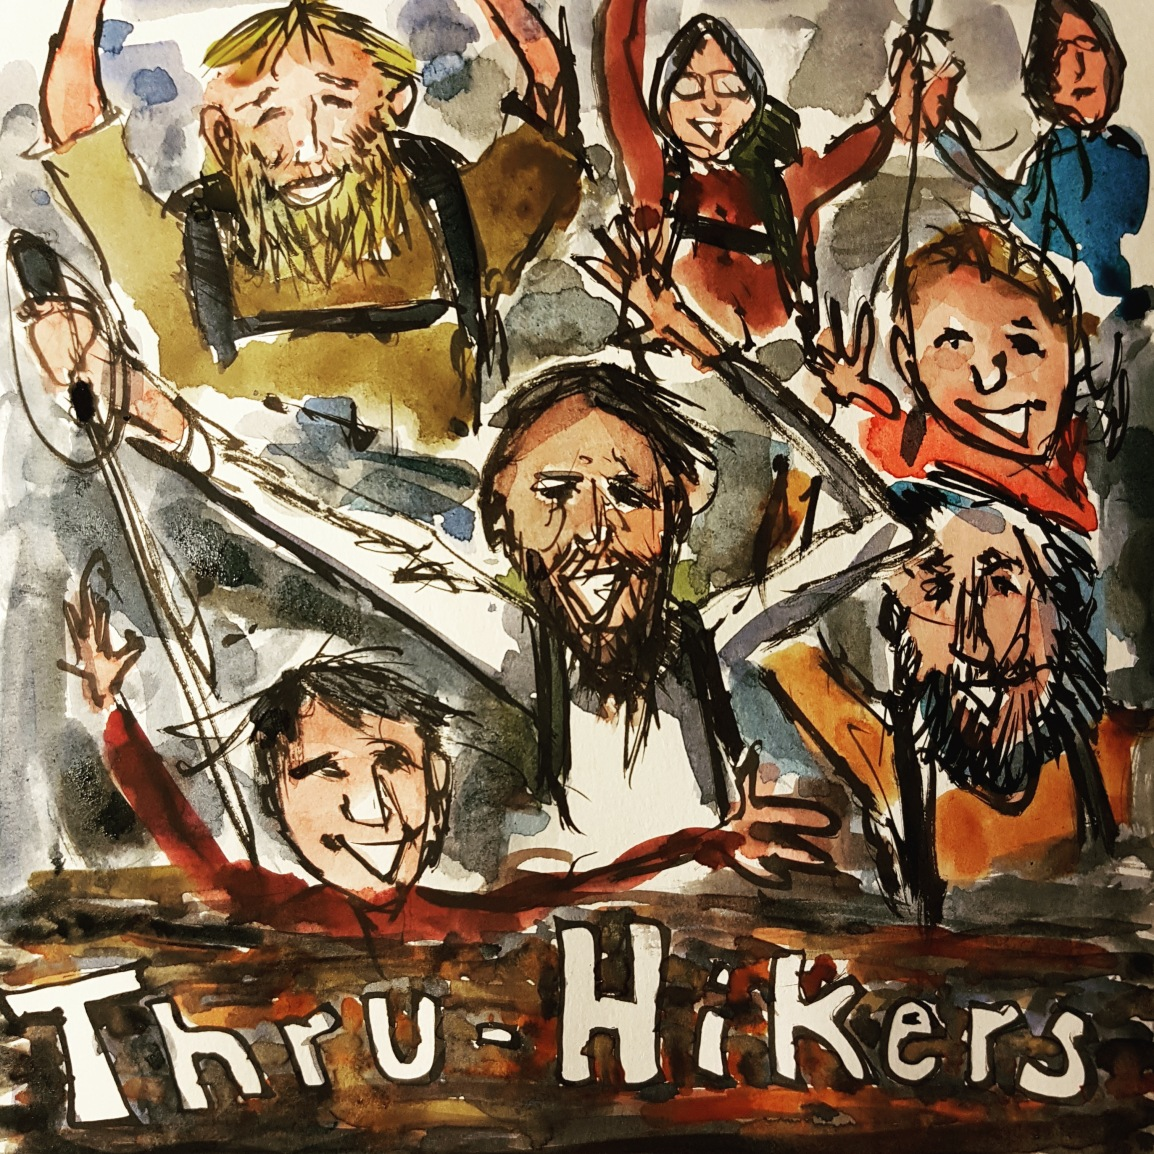 Thru-hikers moment sketch